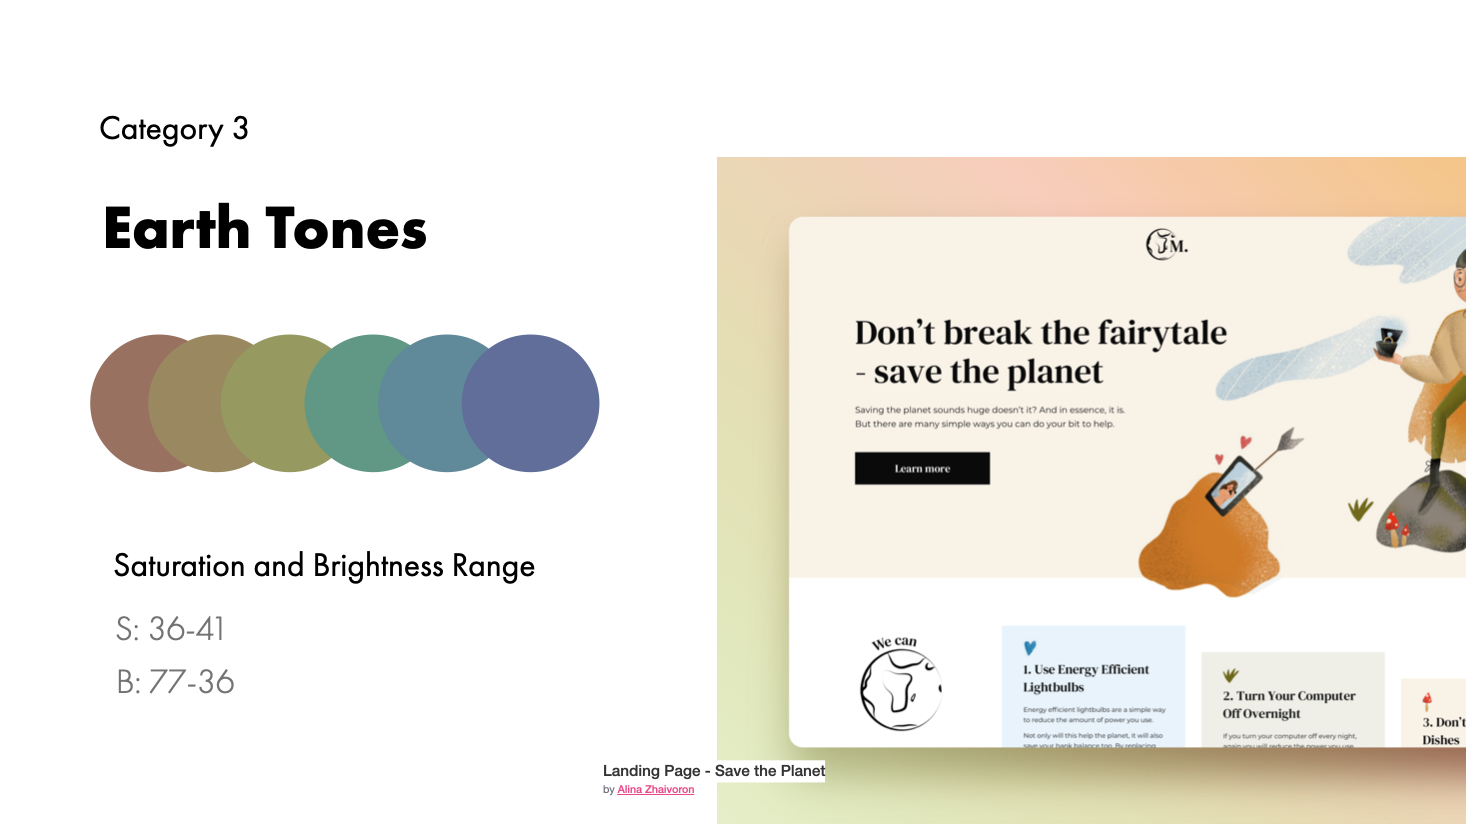 Earth tone examples and range | Landing Page - Save the Planet by Alina Zhaivoron